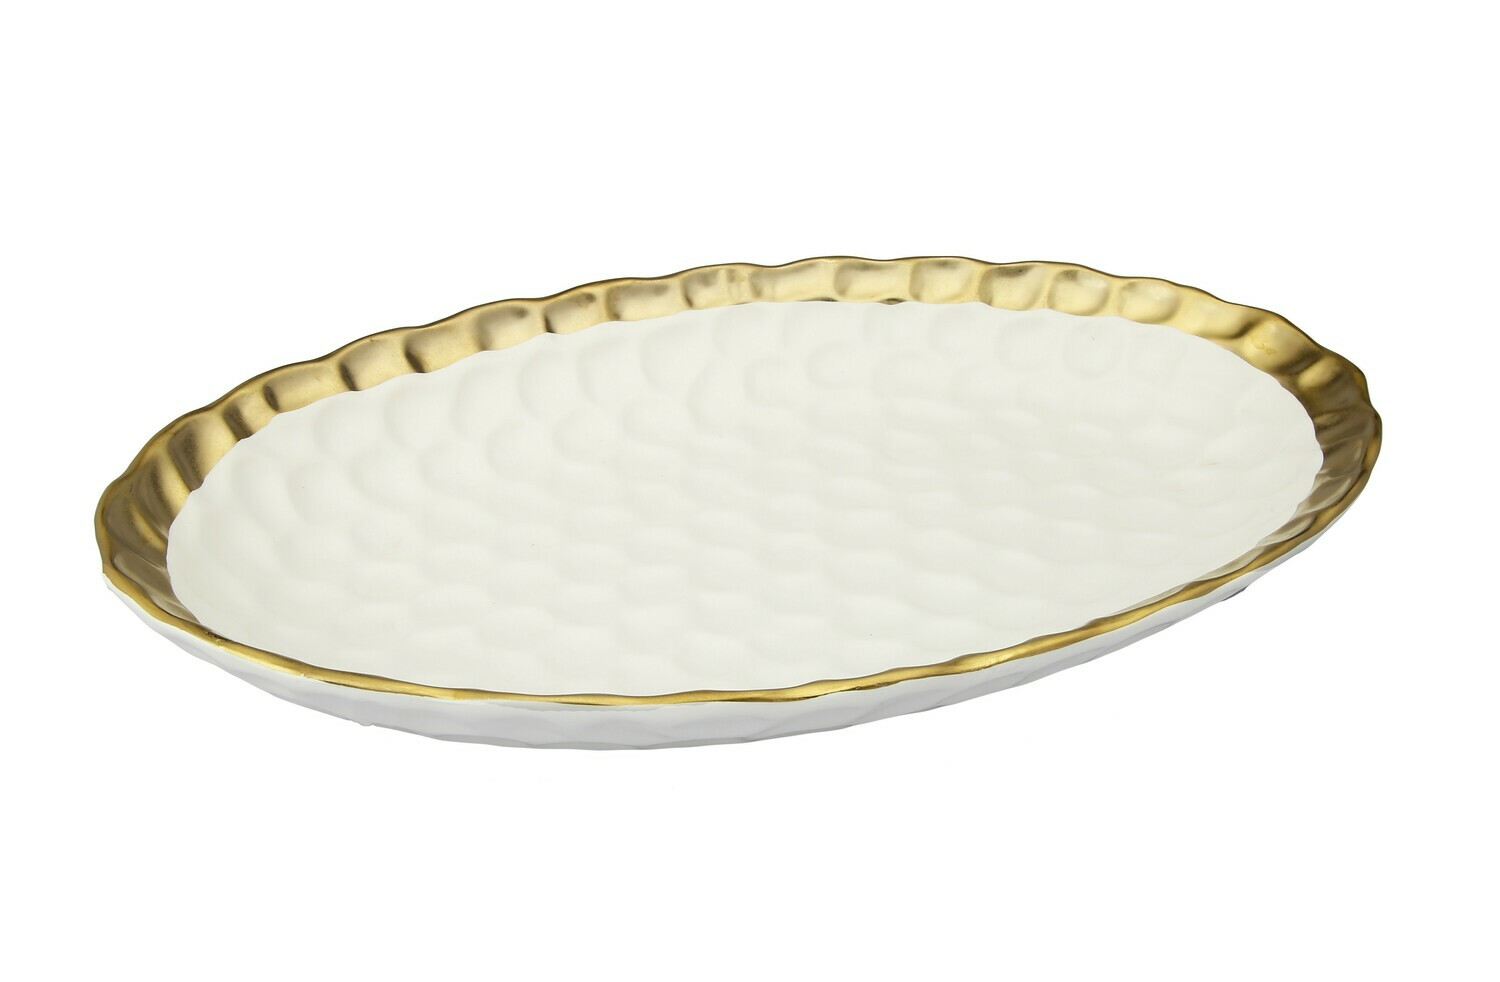 CT White Oval Tray With Gold Rim